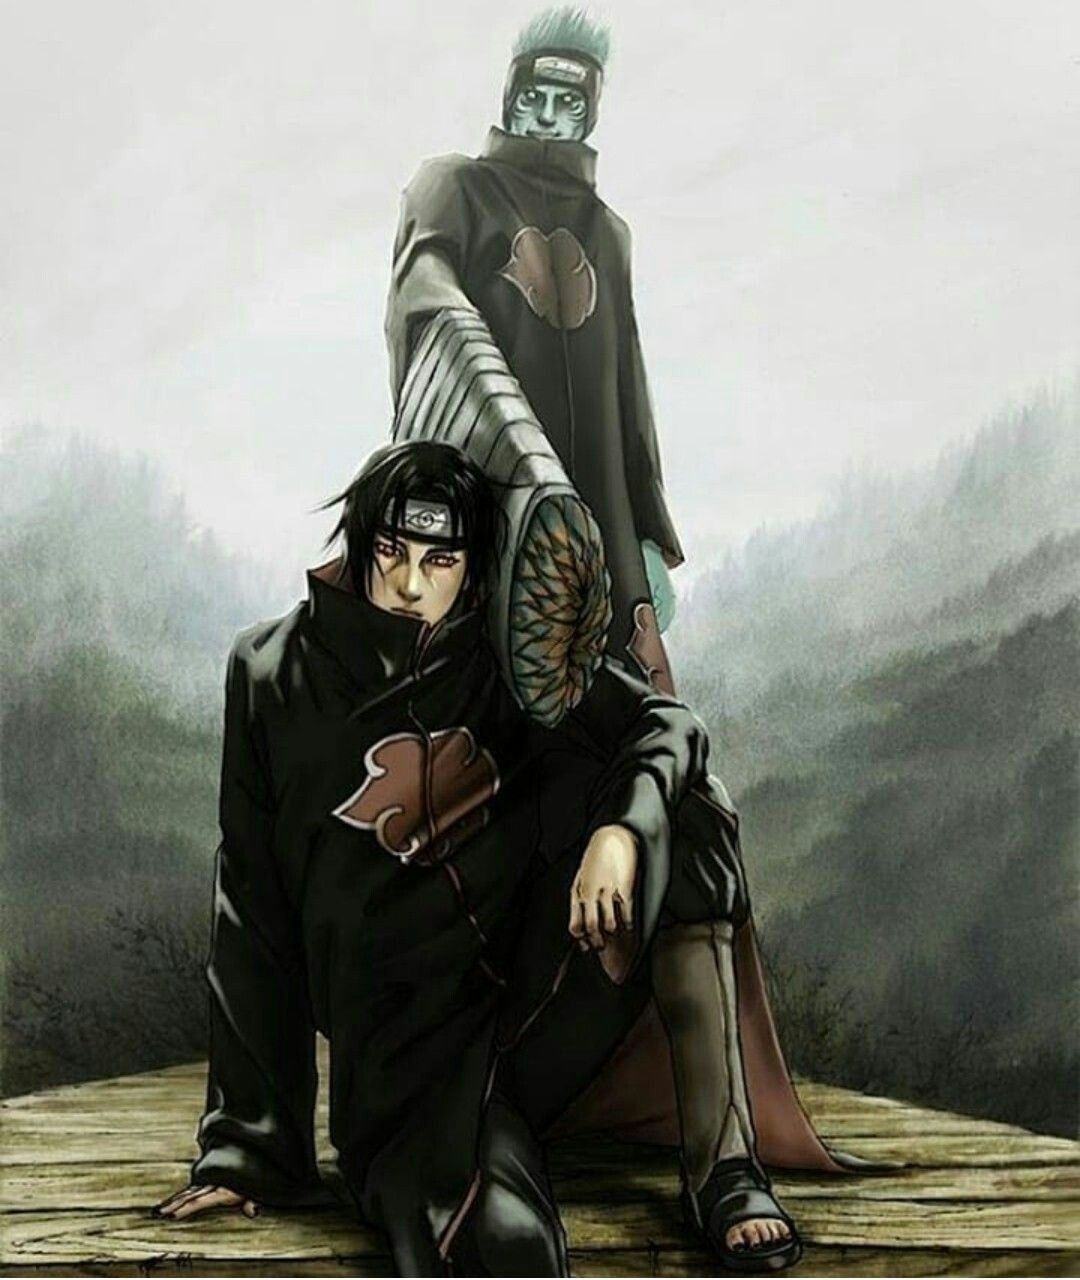 Pin by gk!! on NARUTO SHIPPUDEN Itachi uchiha, Itachi